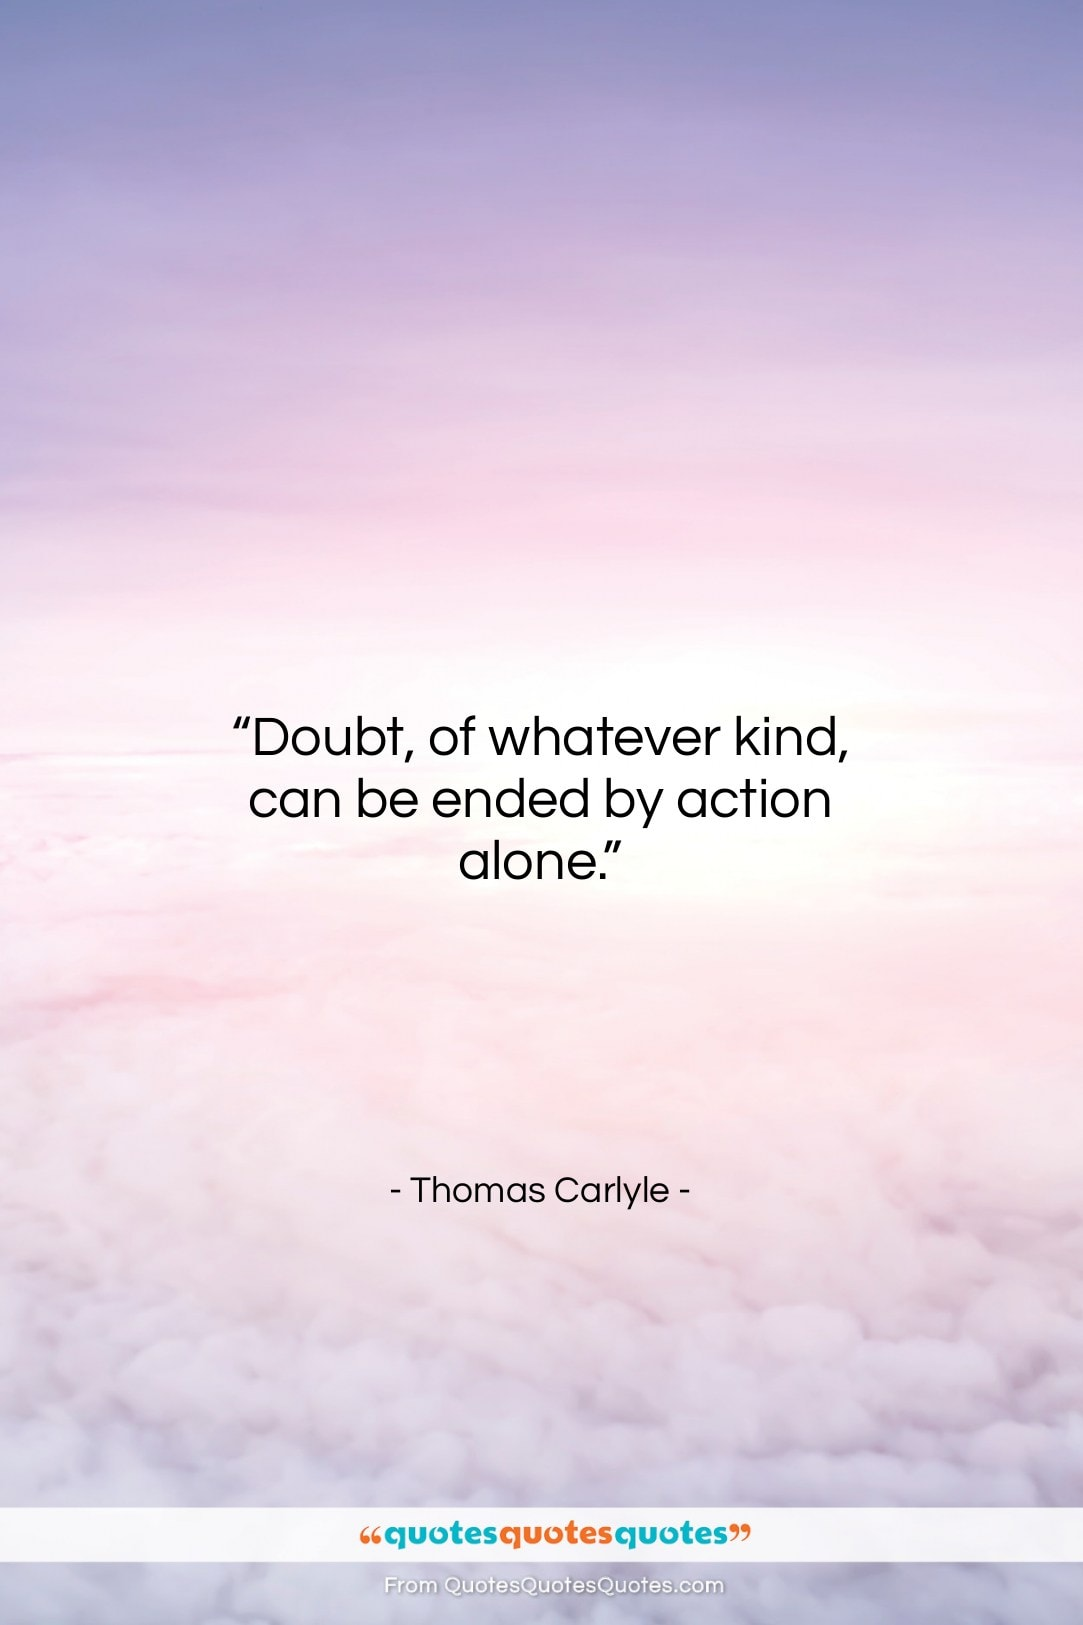 """Thomas Carlyle quote: """"Doubt, of whatever kind, can be ended…""""- at QuotesQuotesQuotes.com"""